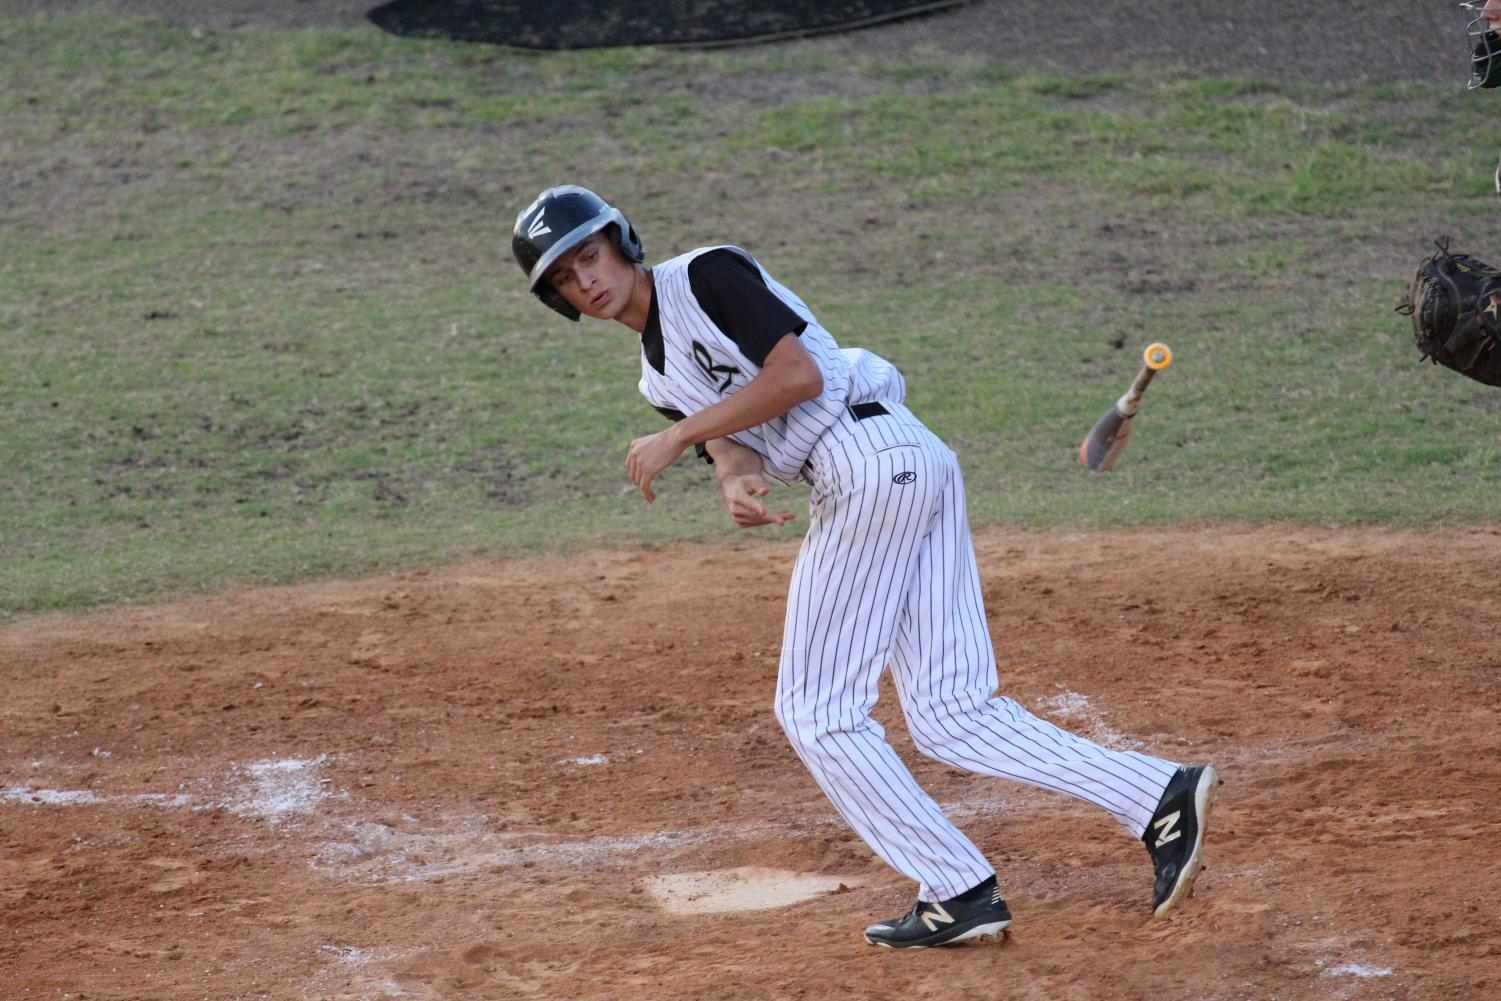 Andrew McMillan ('18) heads to first base after a walk against Sickles on Thursday, April 26.